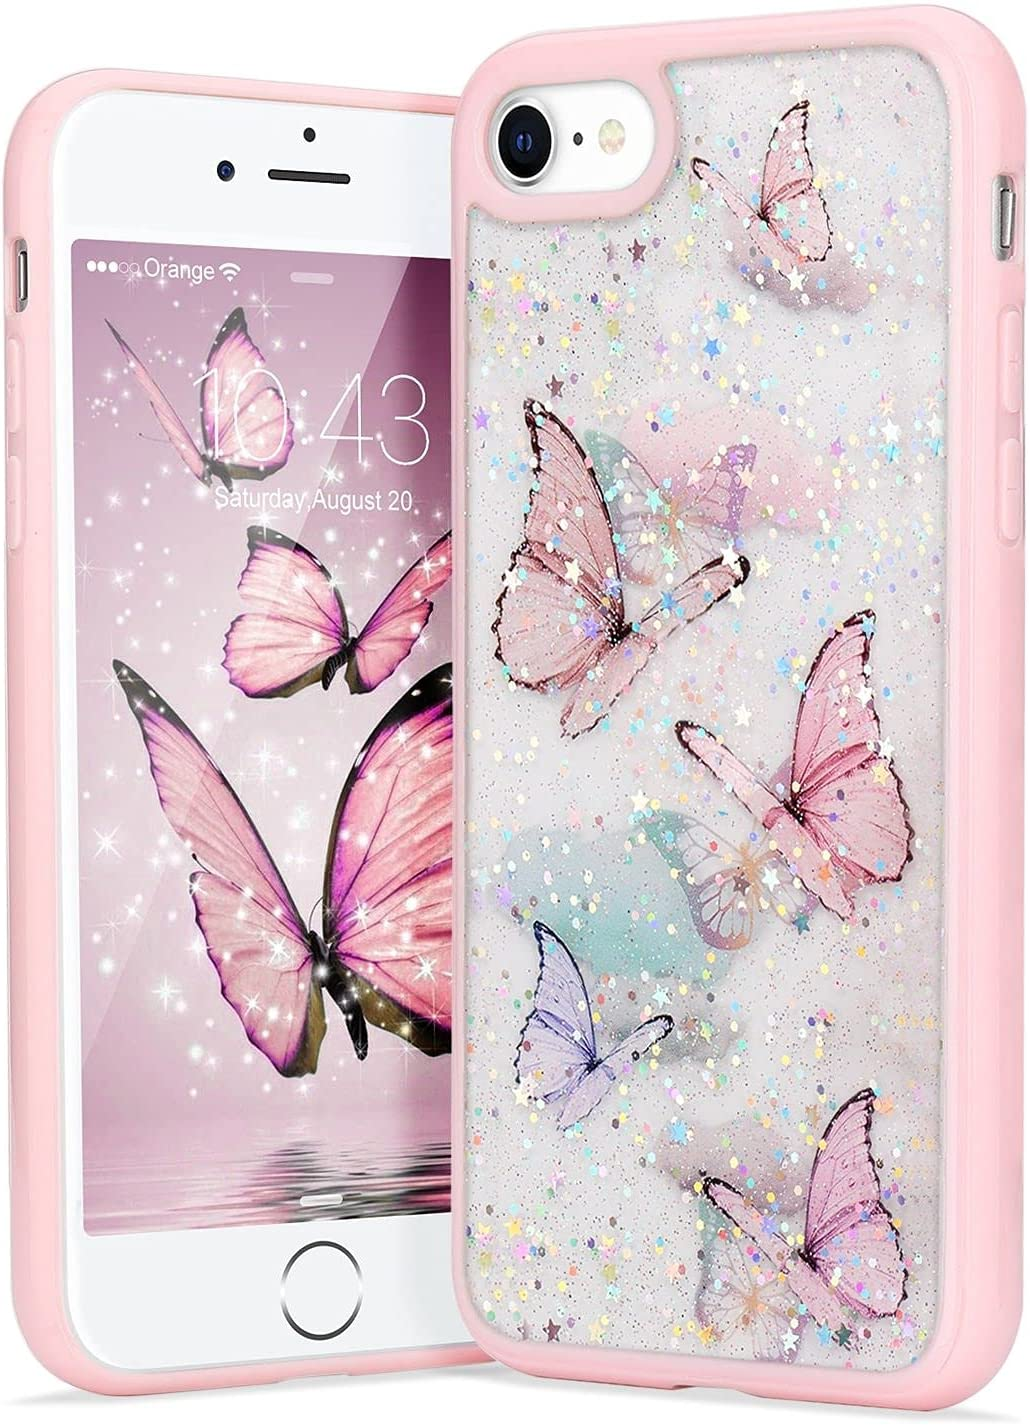 LAPOPNUT Compatible with iPhone 7 Plus Case iPhone 8 Plus Case for Girls Women,Cute Butterfly Bling Glitter Clear Phone Case Protective Silicone Bumper Butterflies Cover Cases iPhone 7 Plus Pink